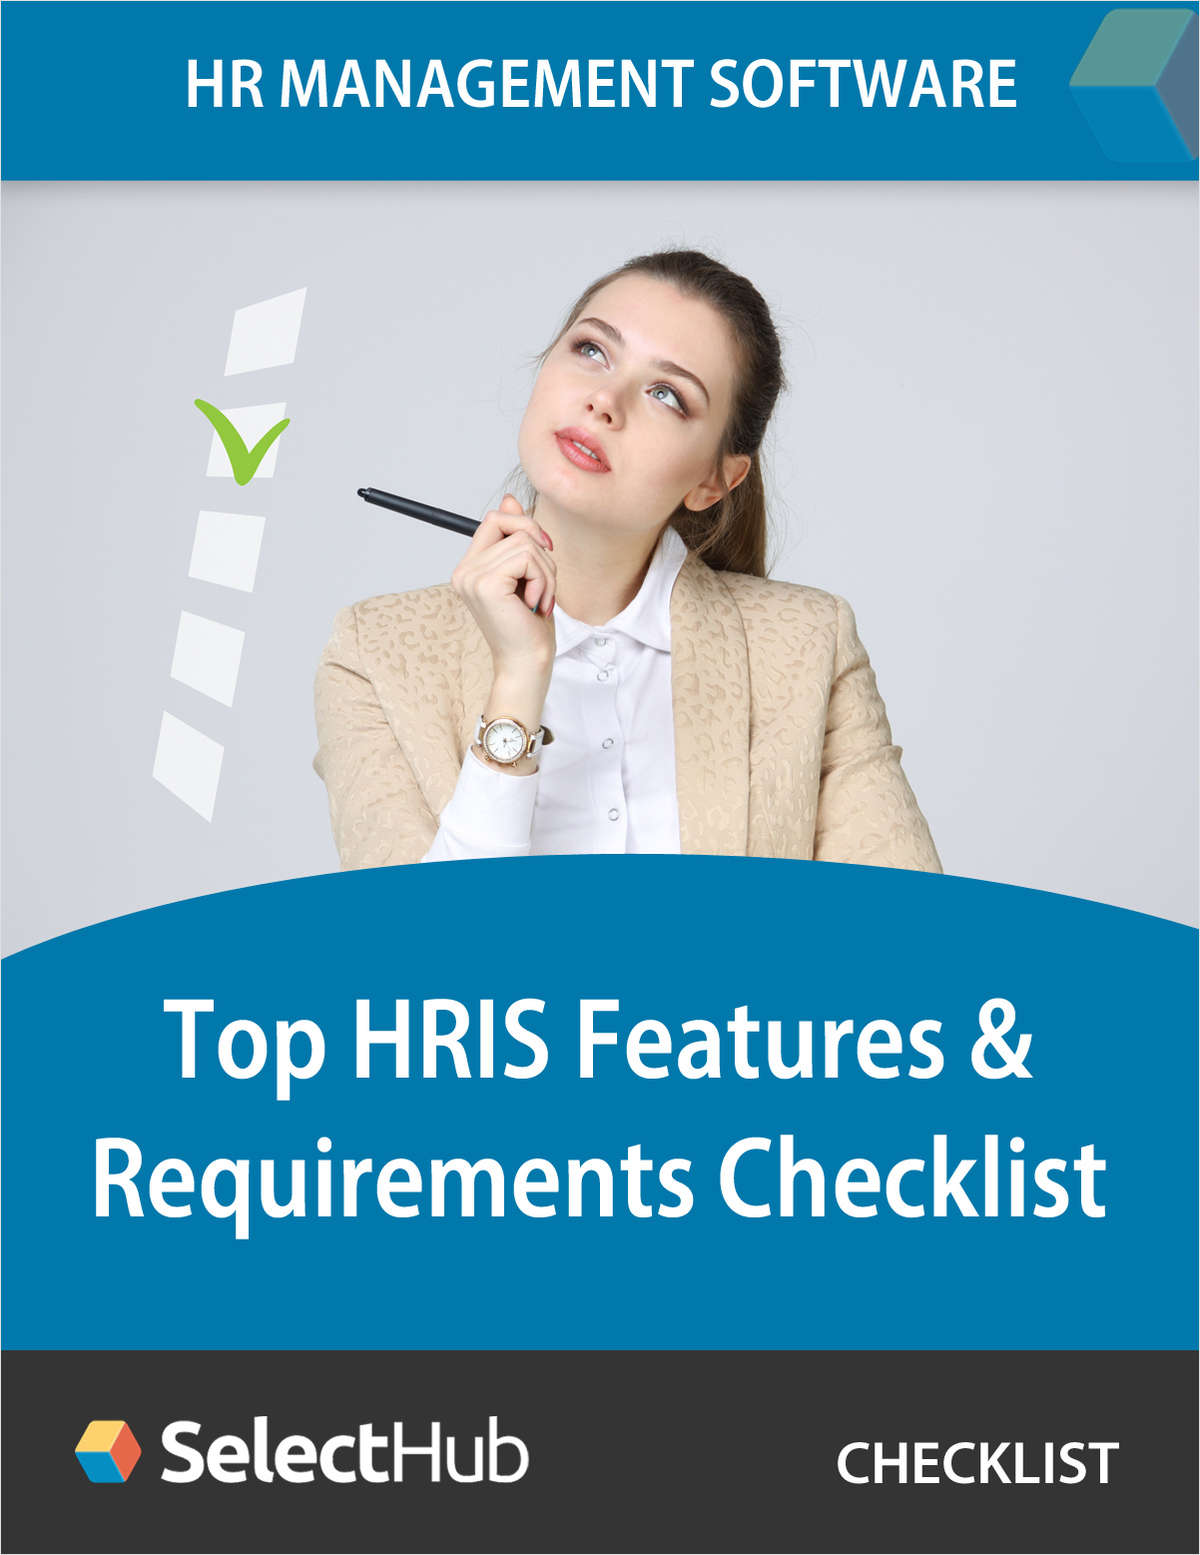 Top HRIS Features & Requirements Checklist